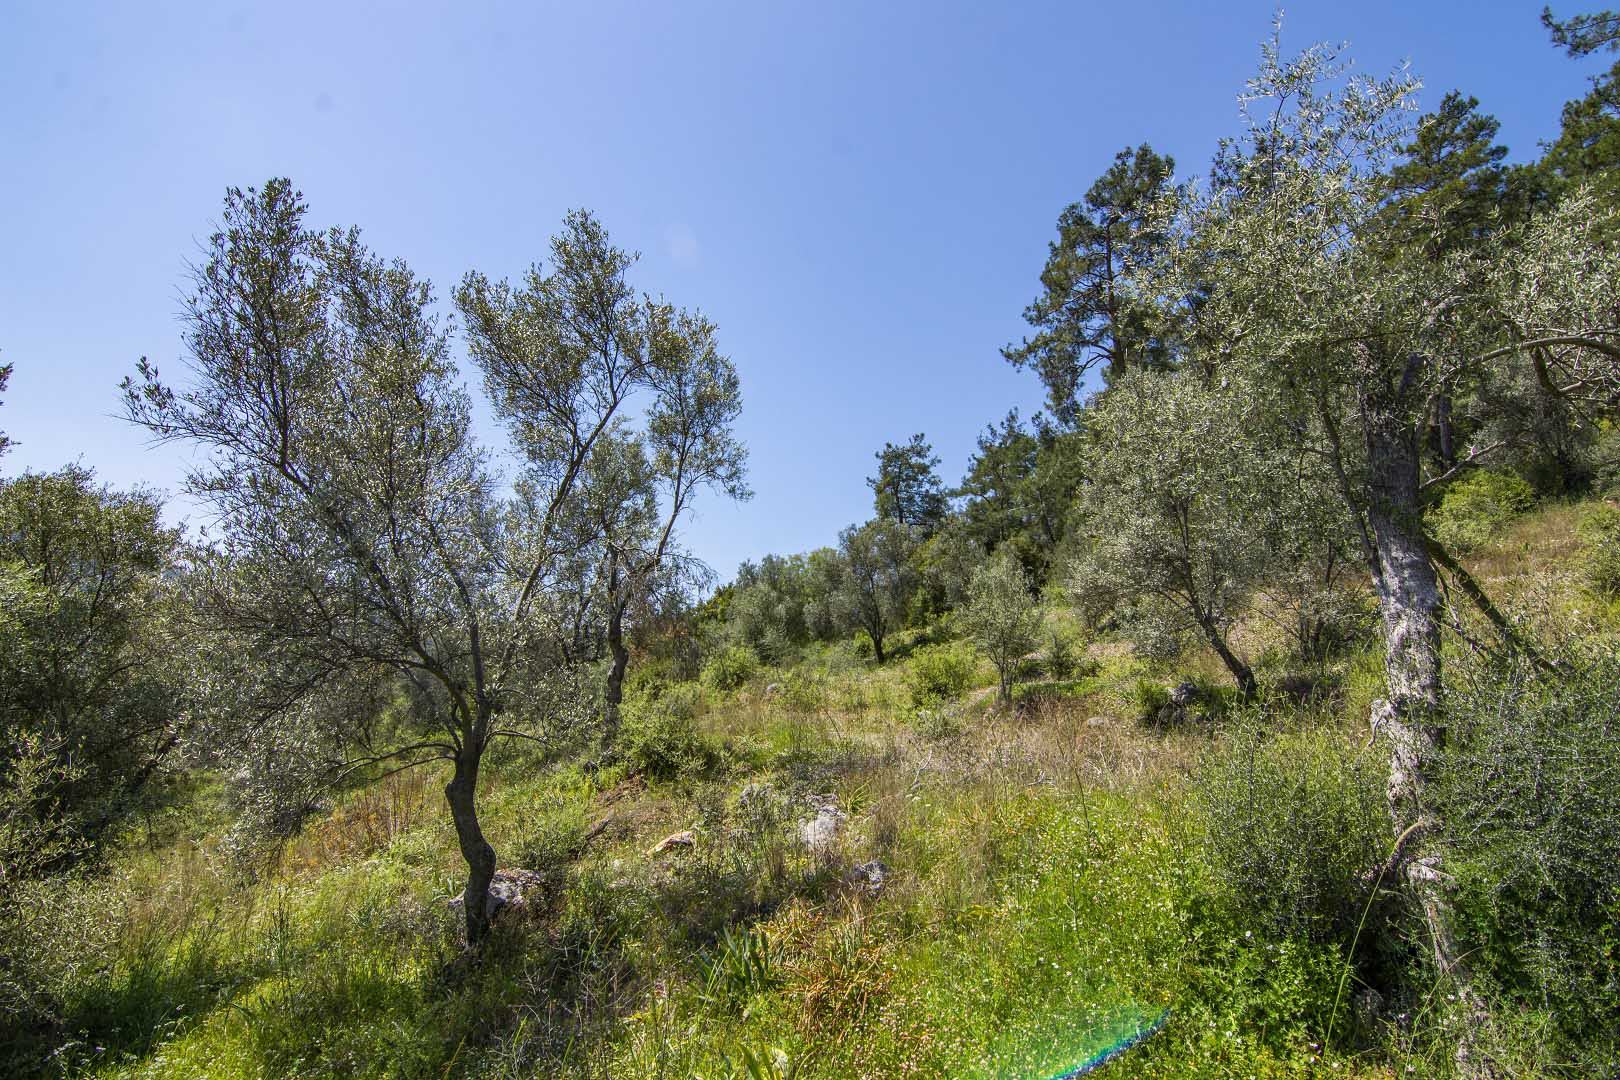 Land For Sale in İnlice Fethiye, Turkey